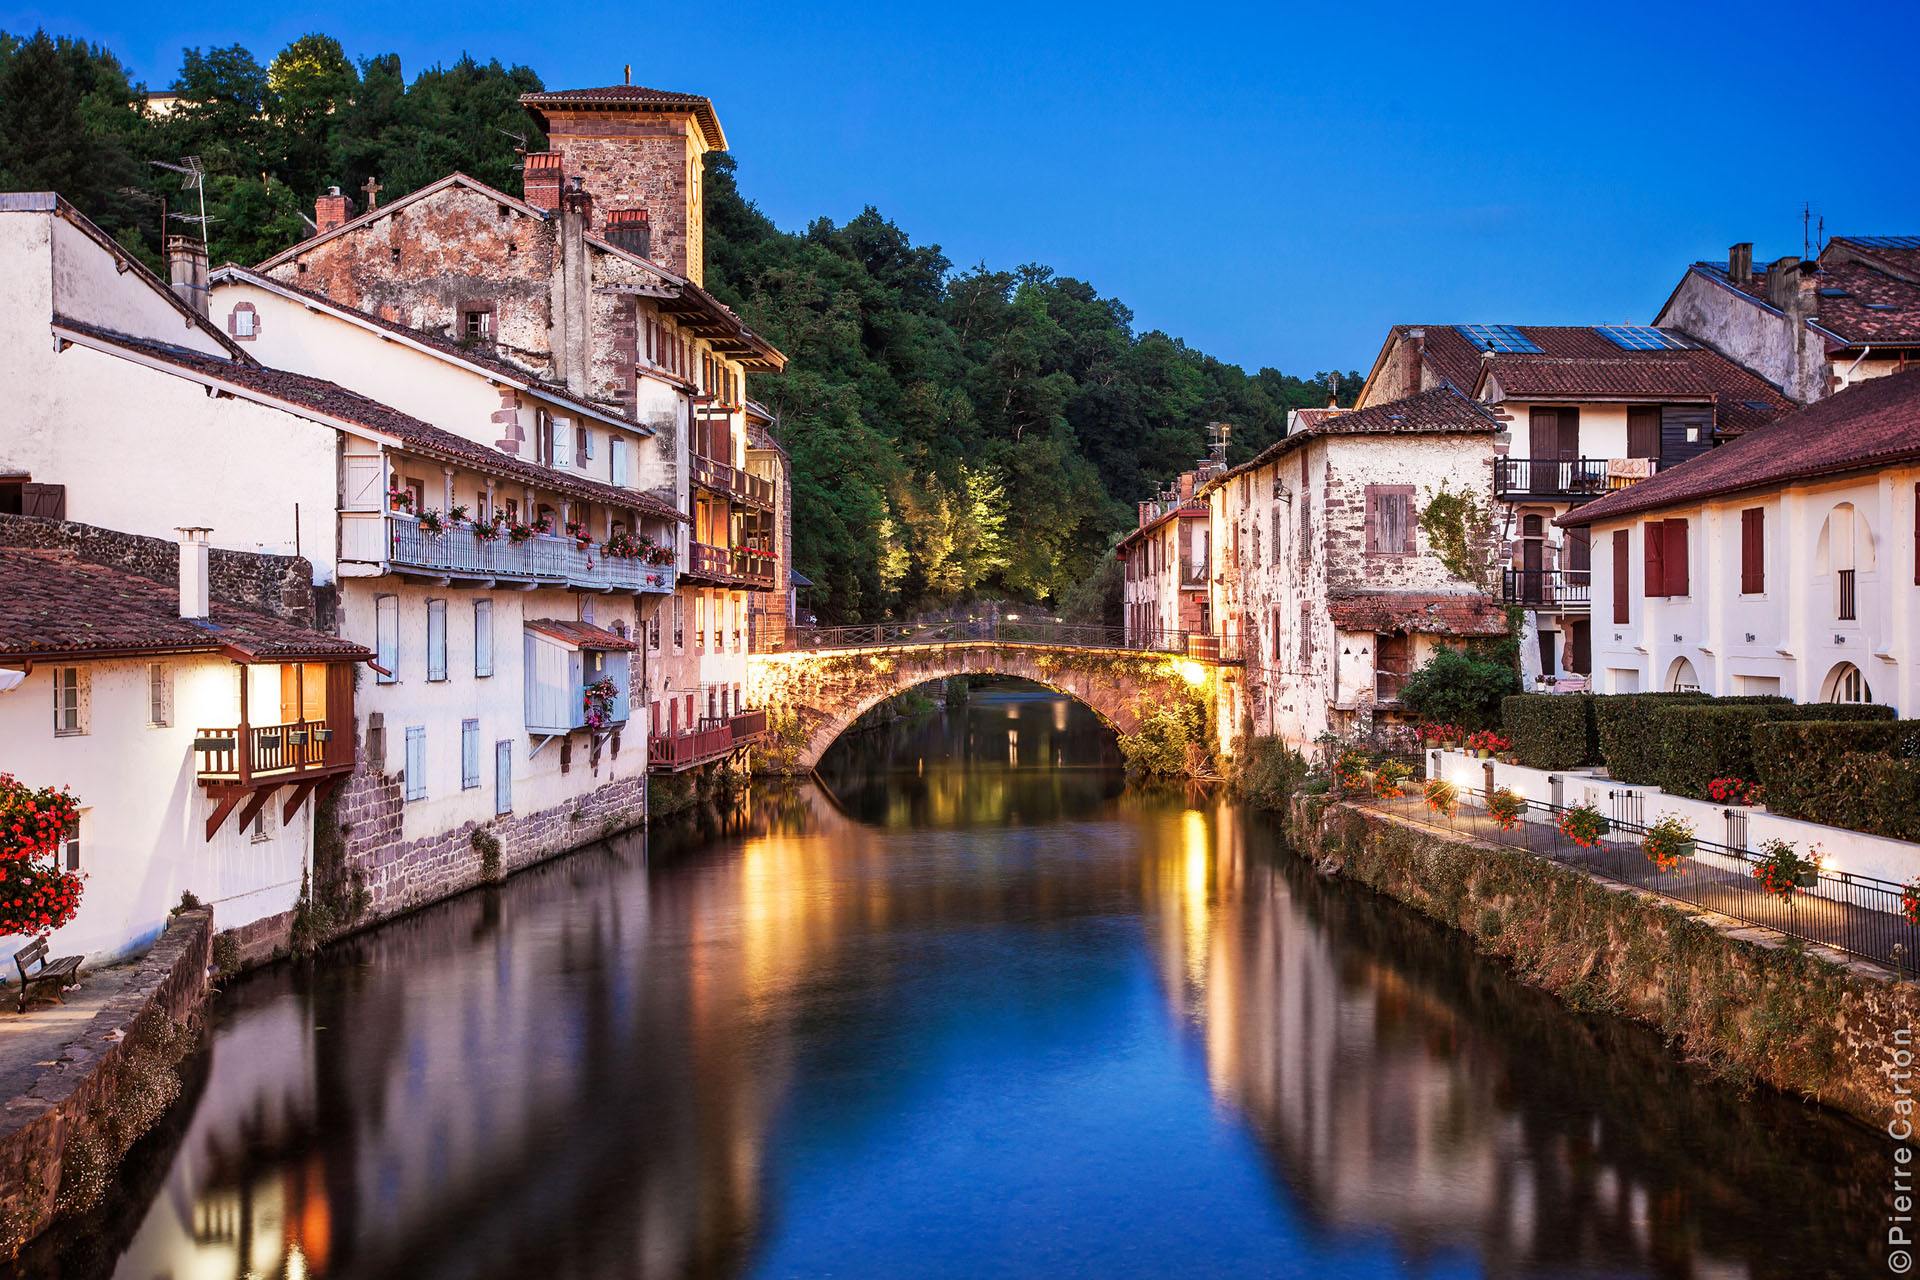 Saint jean pied de port saint jean pied de port - Saint jean pied de port saint jacques de compostelle distance ...